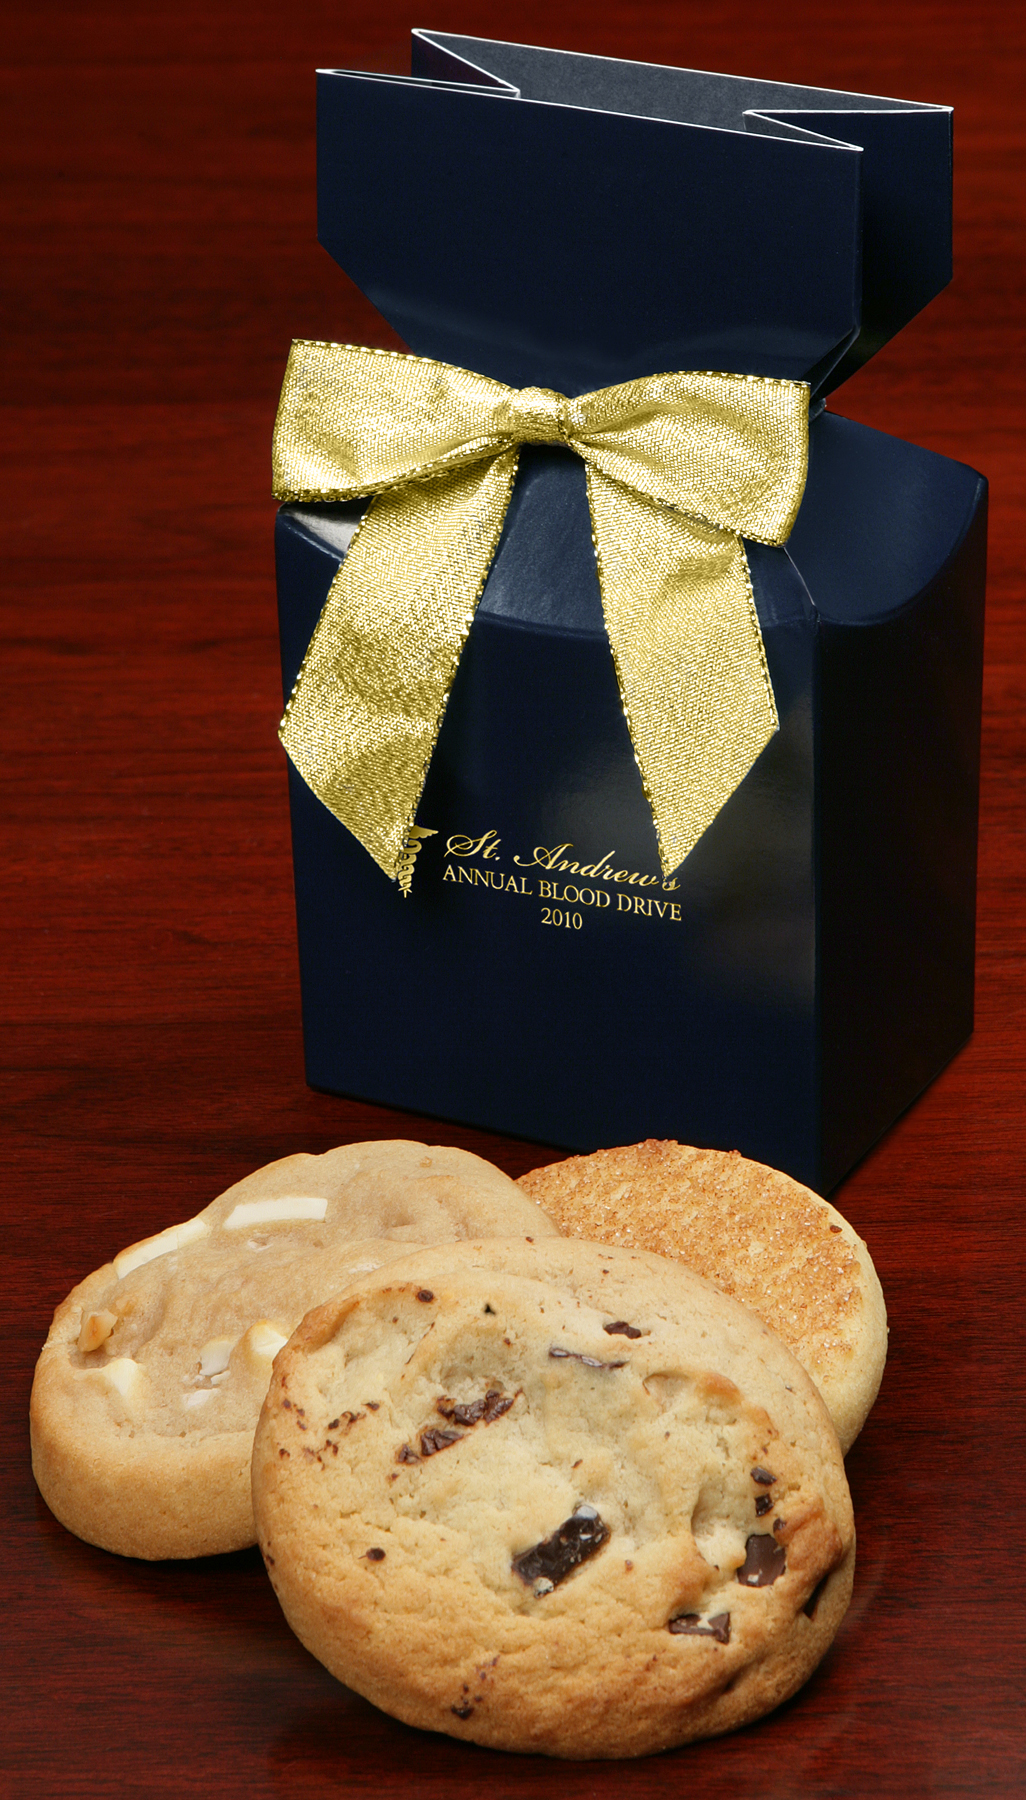 Navy Delights - Cookies